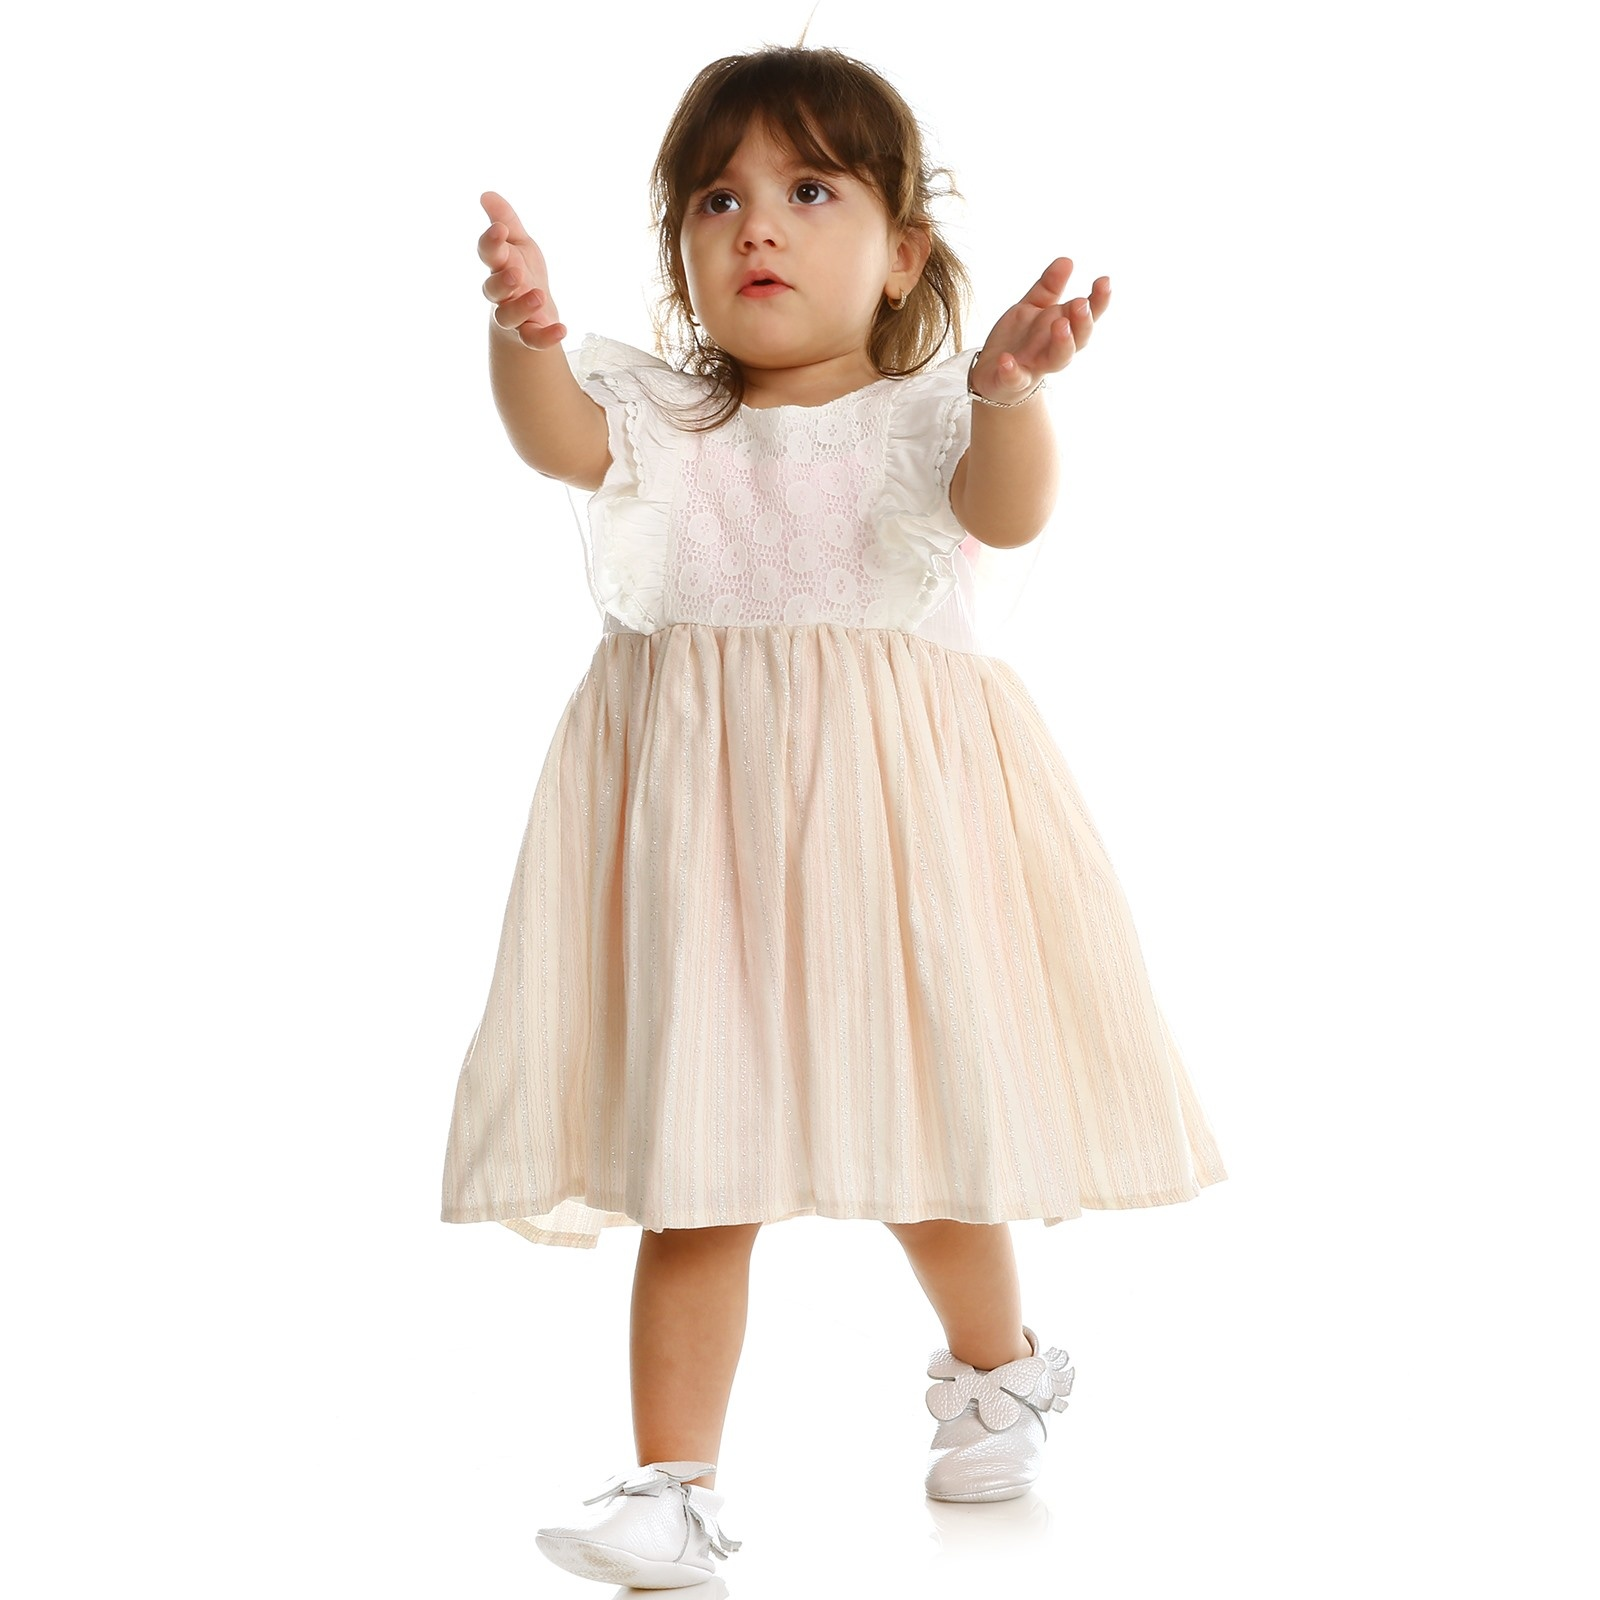 Ebebek Bombili Summer Baby Girl Vual Short Sleeve Crew-Neck Dress